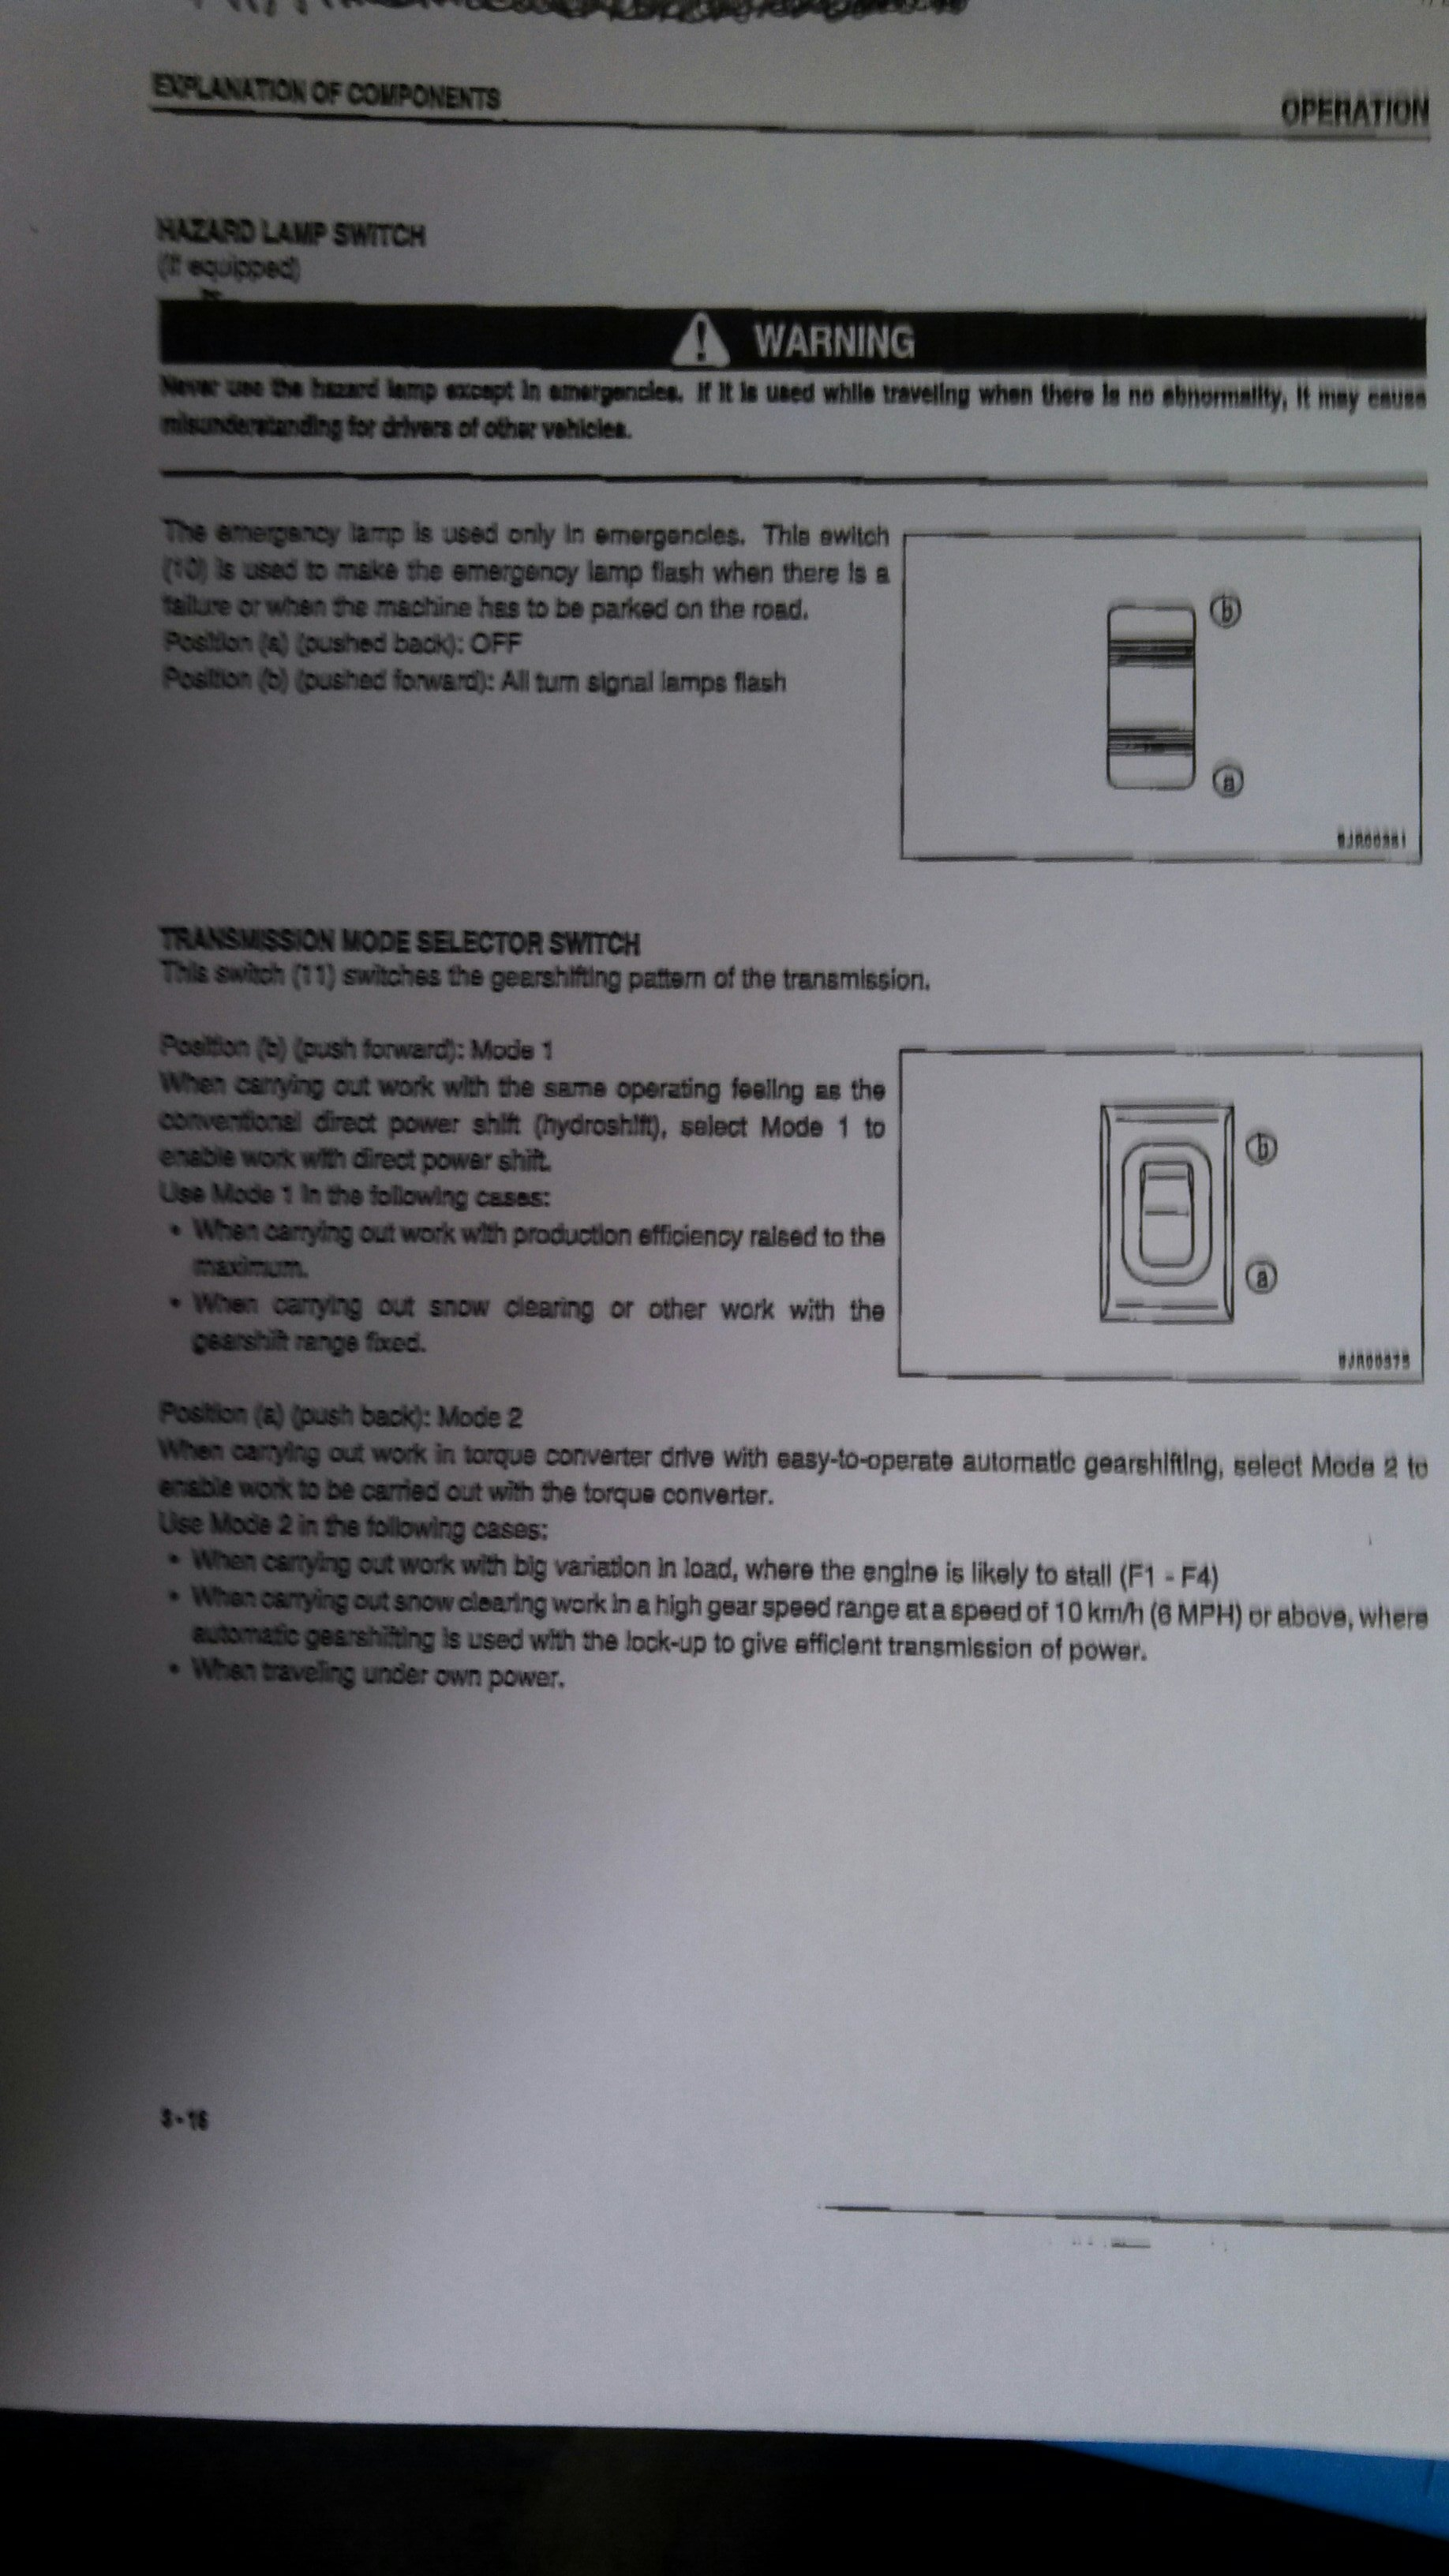 I Have Recently Purchased A Komatsu Gd555 3a Grader And There Is D41p Wiring Diagrams In Mode 2 It Manually Shifts Through 1 4 Then Autoshift 5 8 Manual Shift Reverse Speeds Here The Info On This